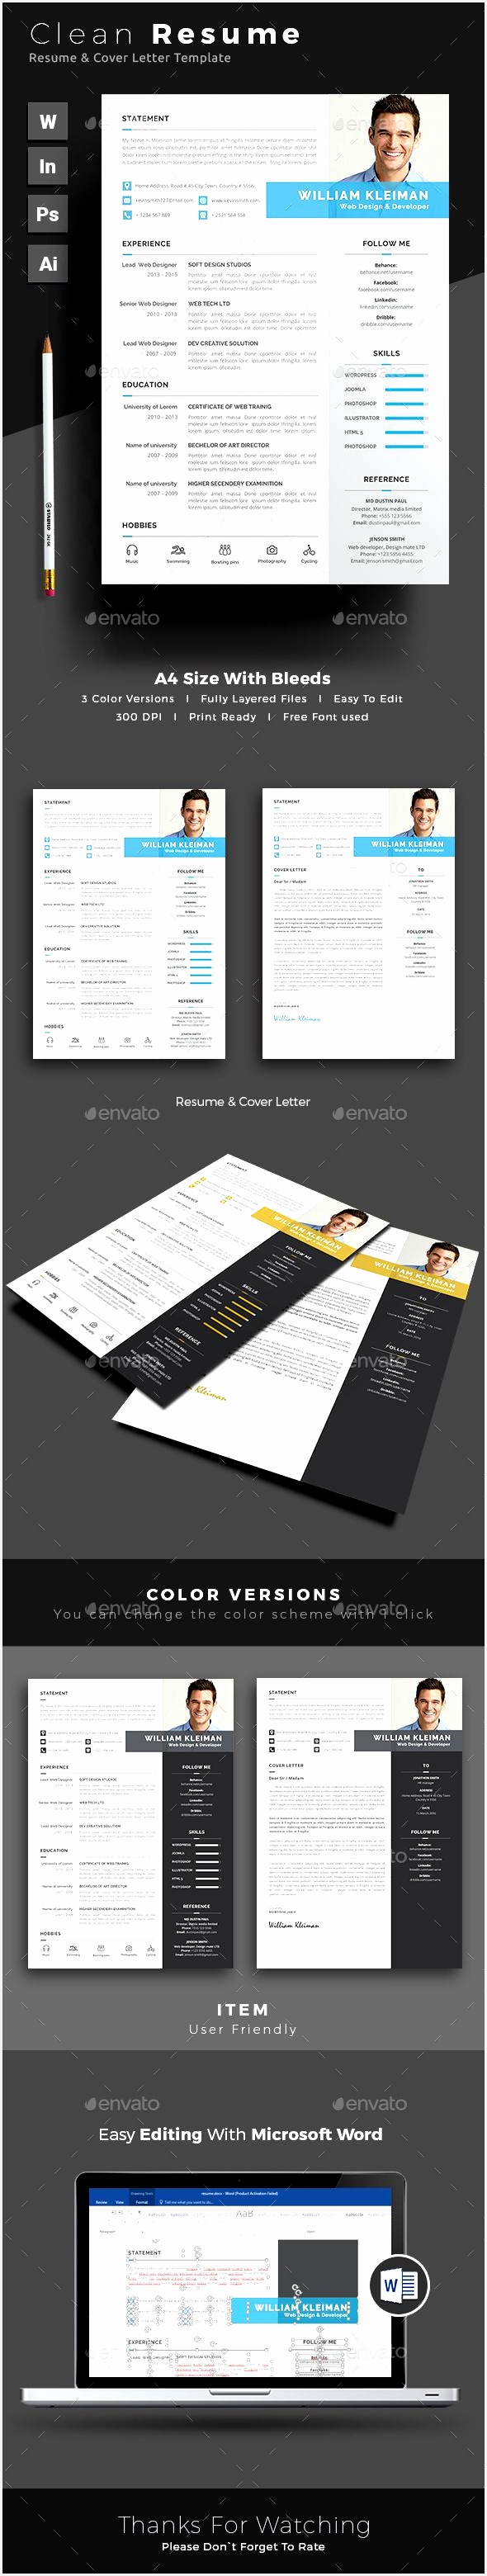 Resume Template PSD InDesign INDD AI Illustrator MS Word3121590